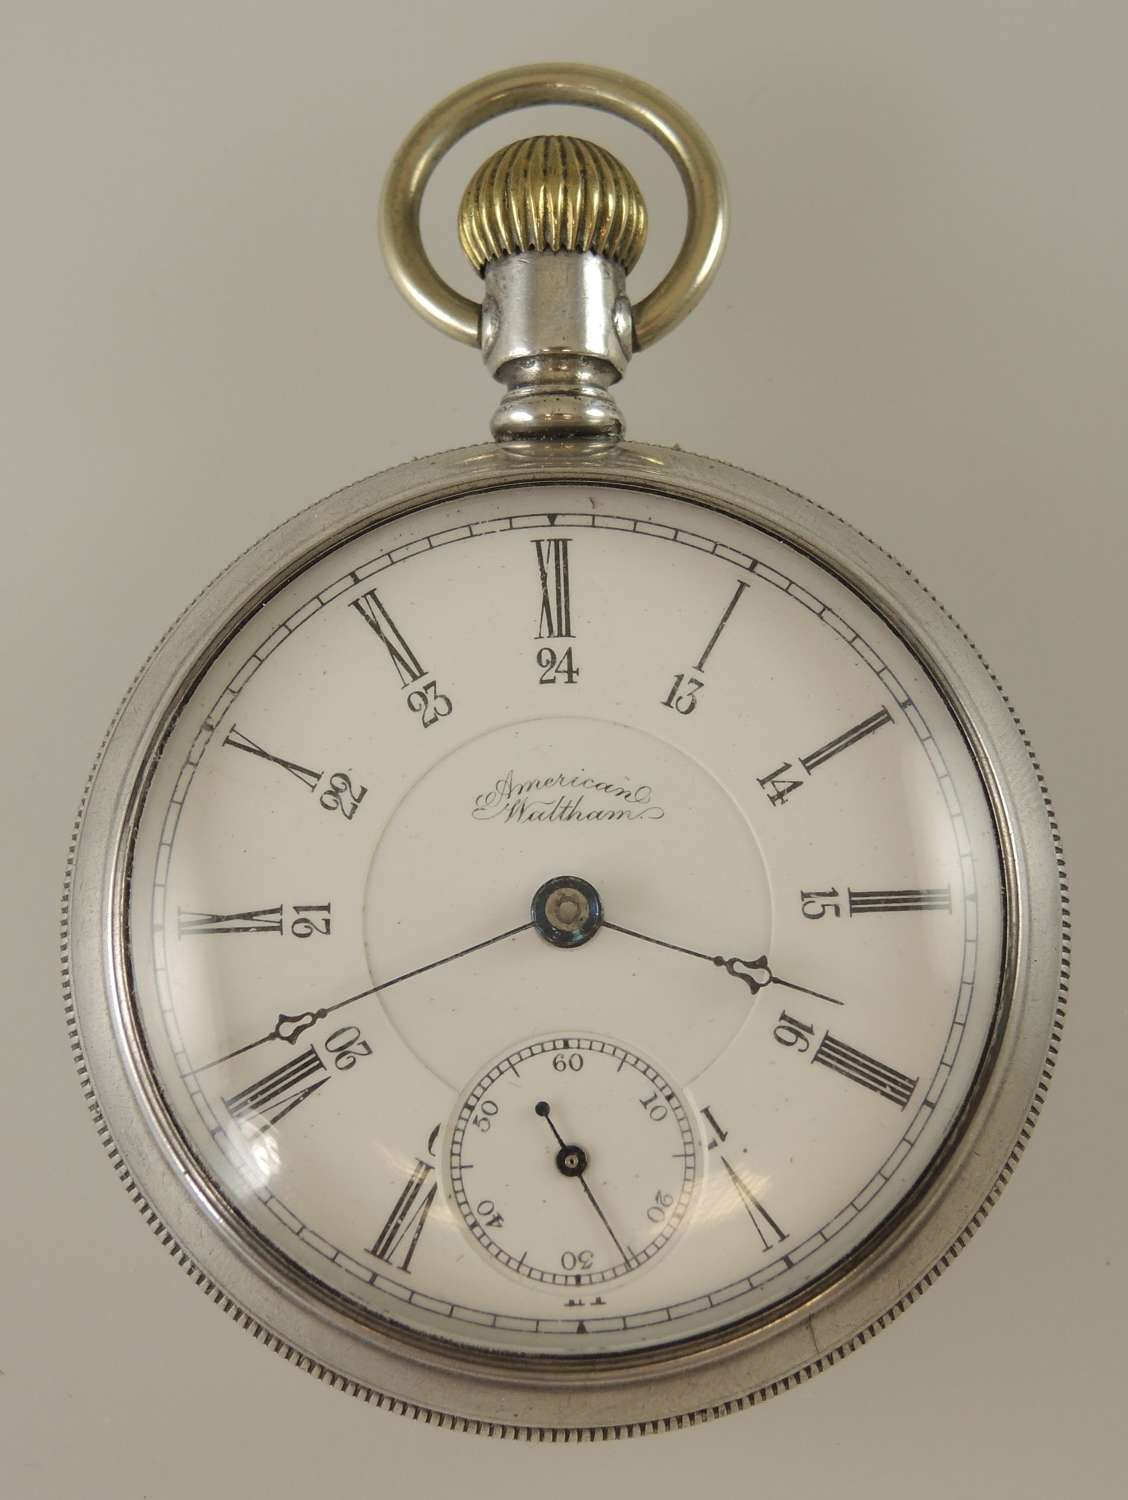 Rare Waltham pocket watch with Canadian military provenance c1891